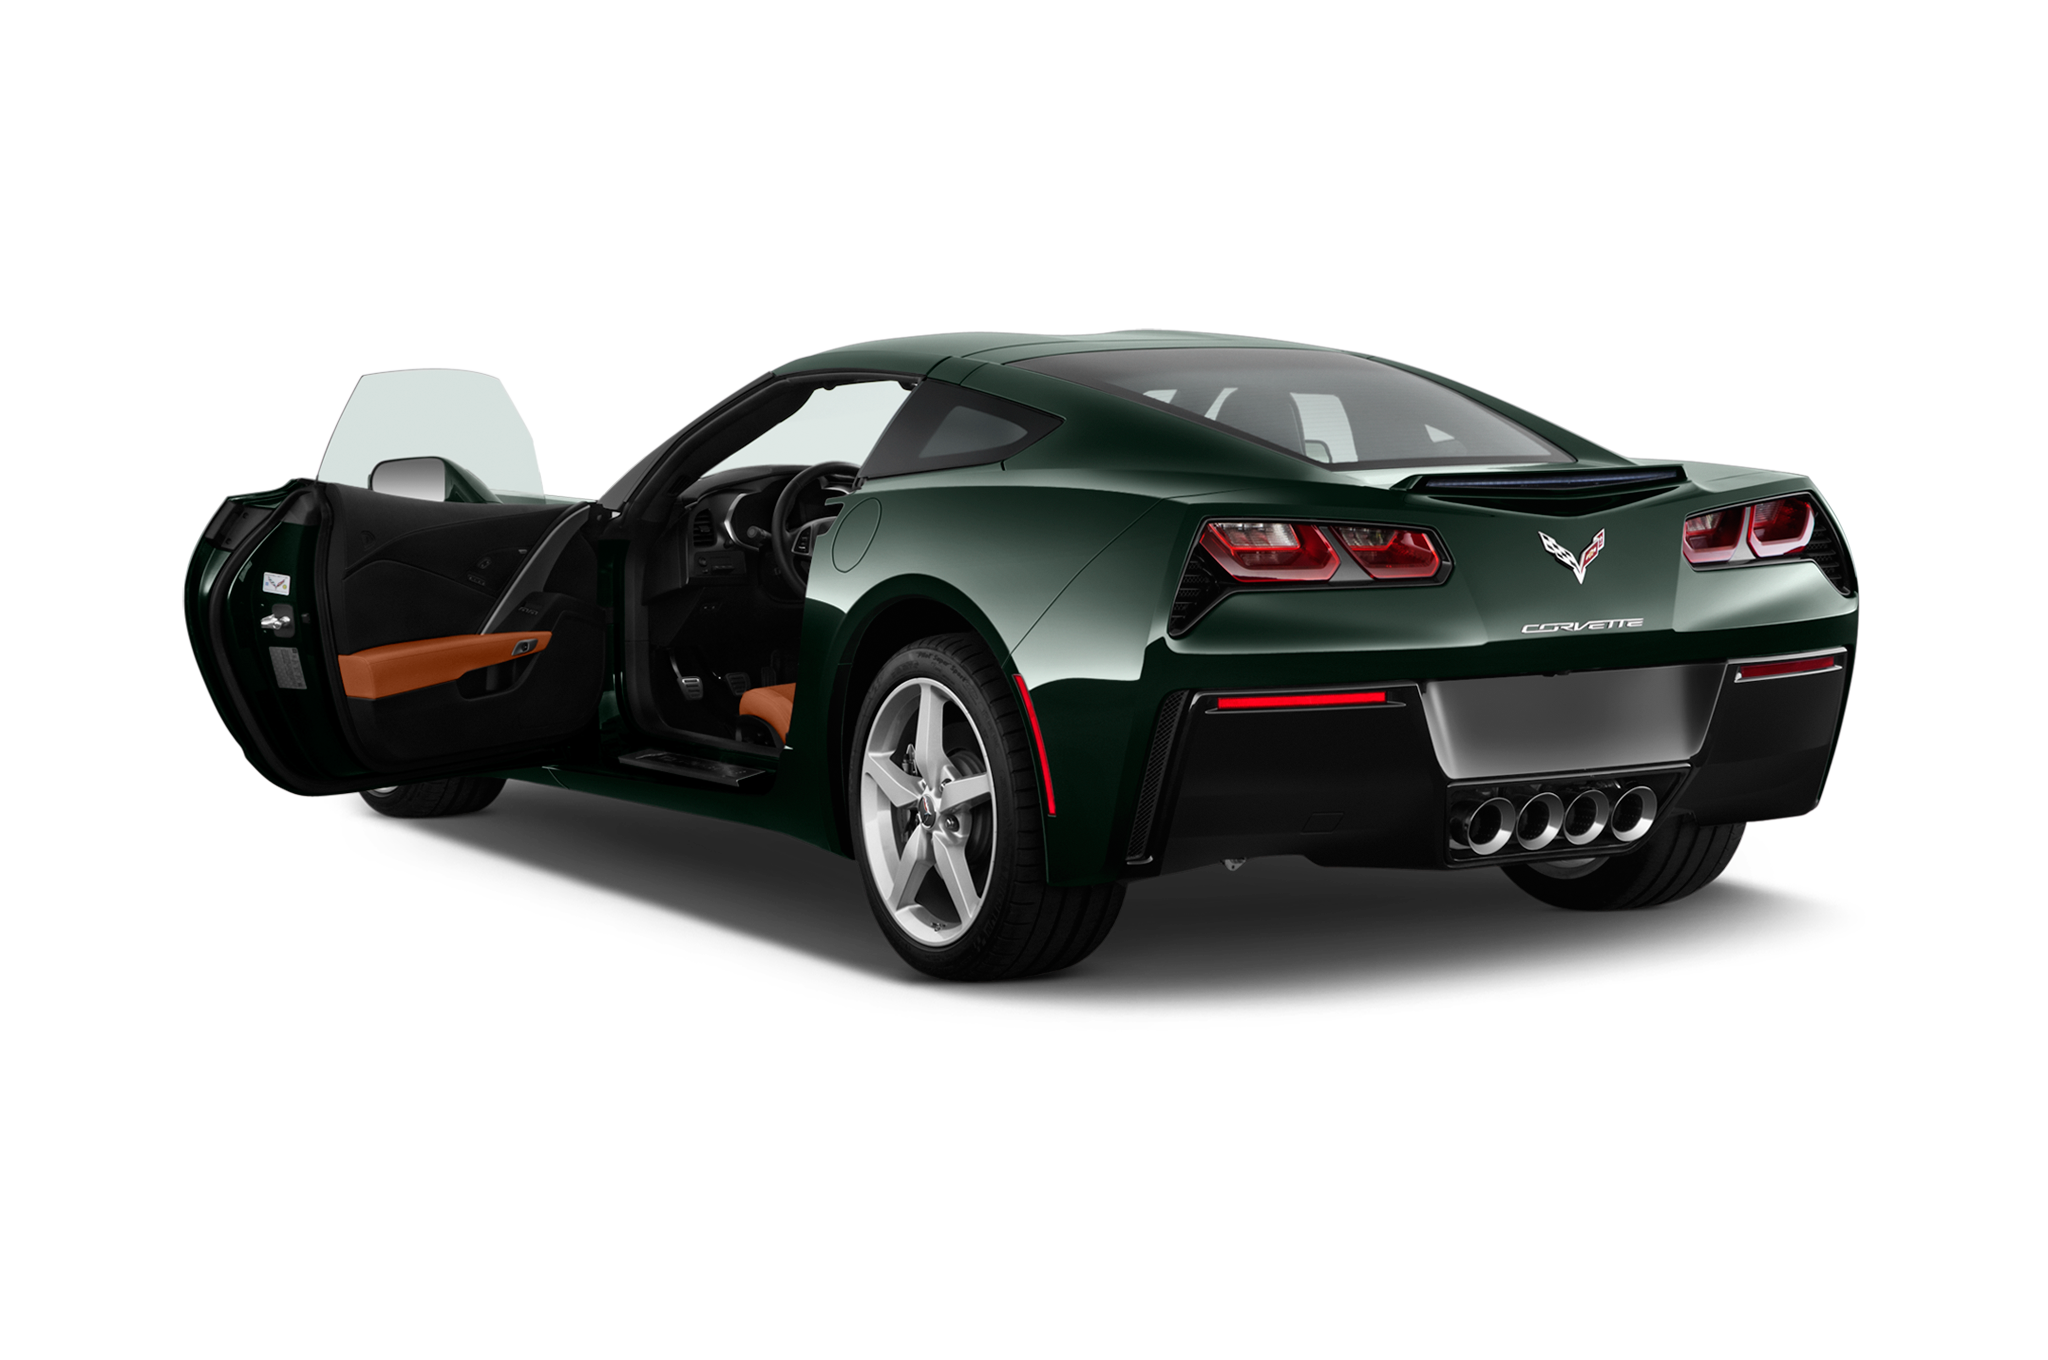 2017 chevrolet corvette grand sport coupe starts from 66 445 automobile magazine. Black Bedroom Furniture Sets. Home Design Ideas